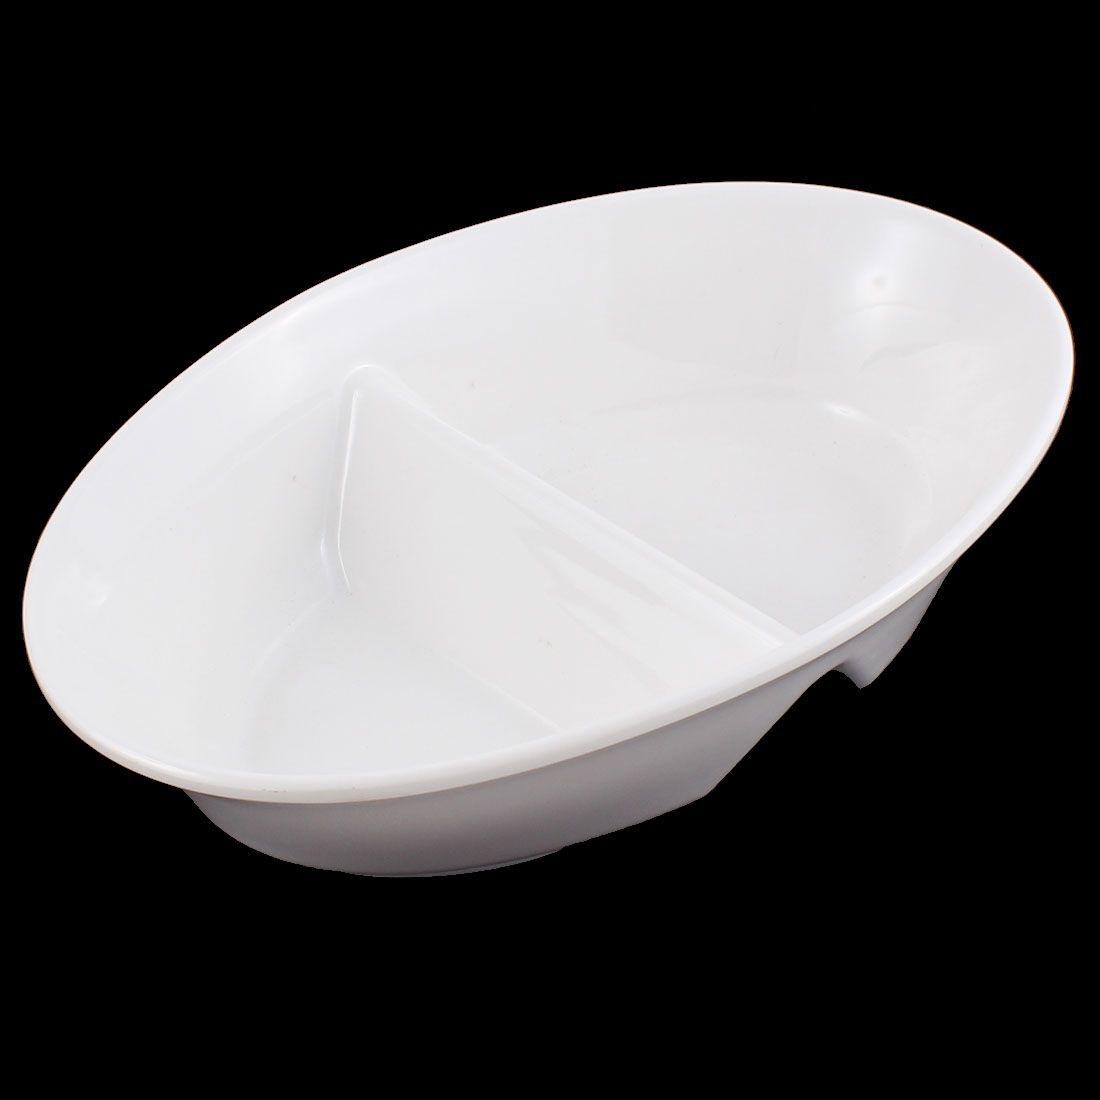 Dinnerware Oval Shaped Two Components Dish Plate White